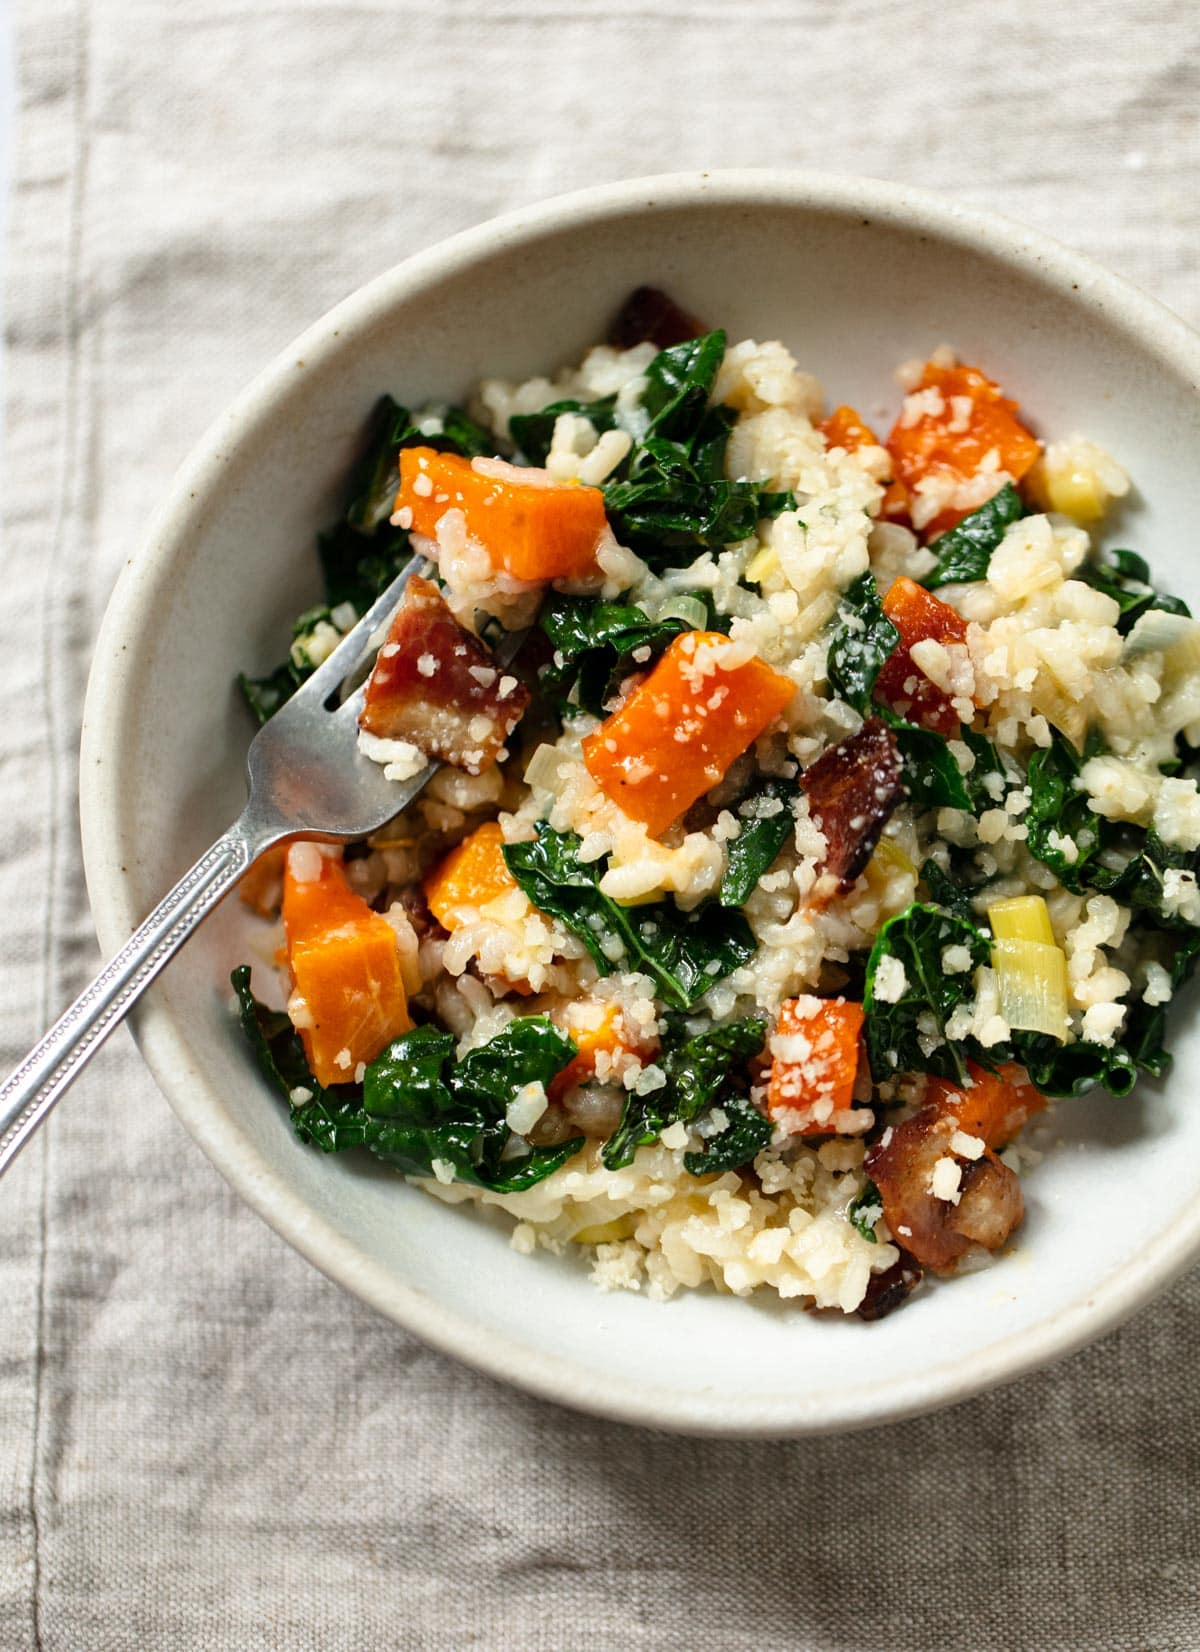 Butternut Squash Risotto with Kale and Bacon (Hands-Free)